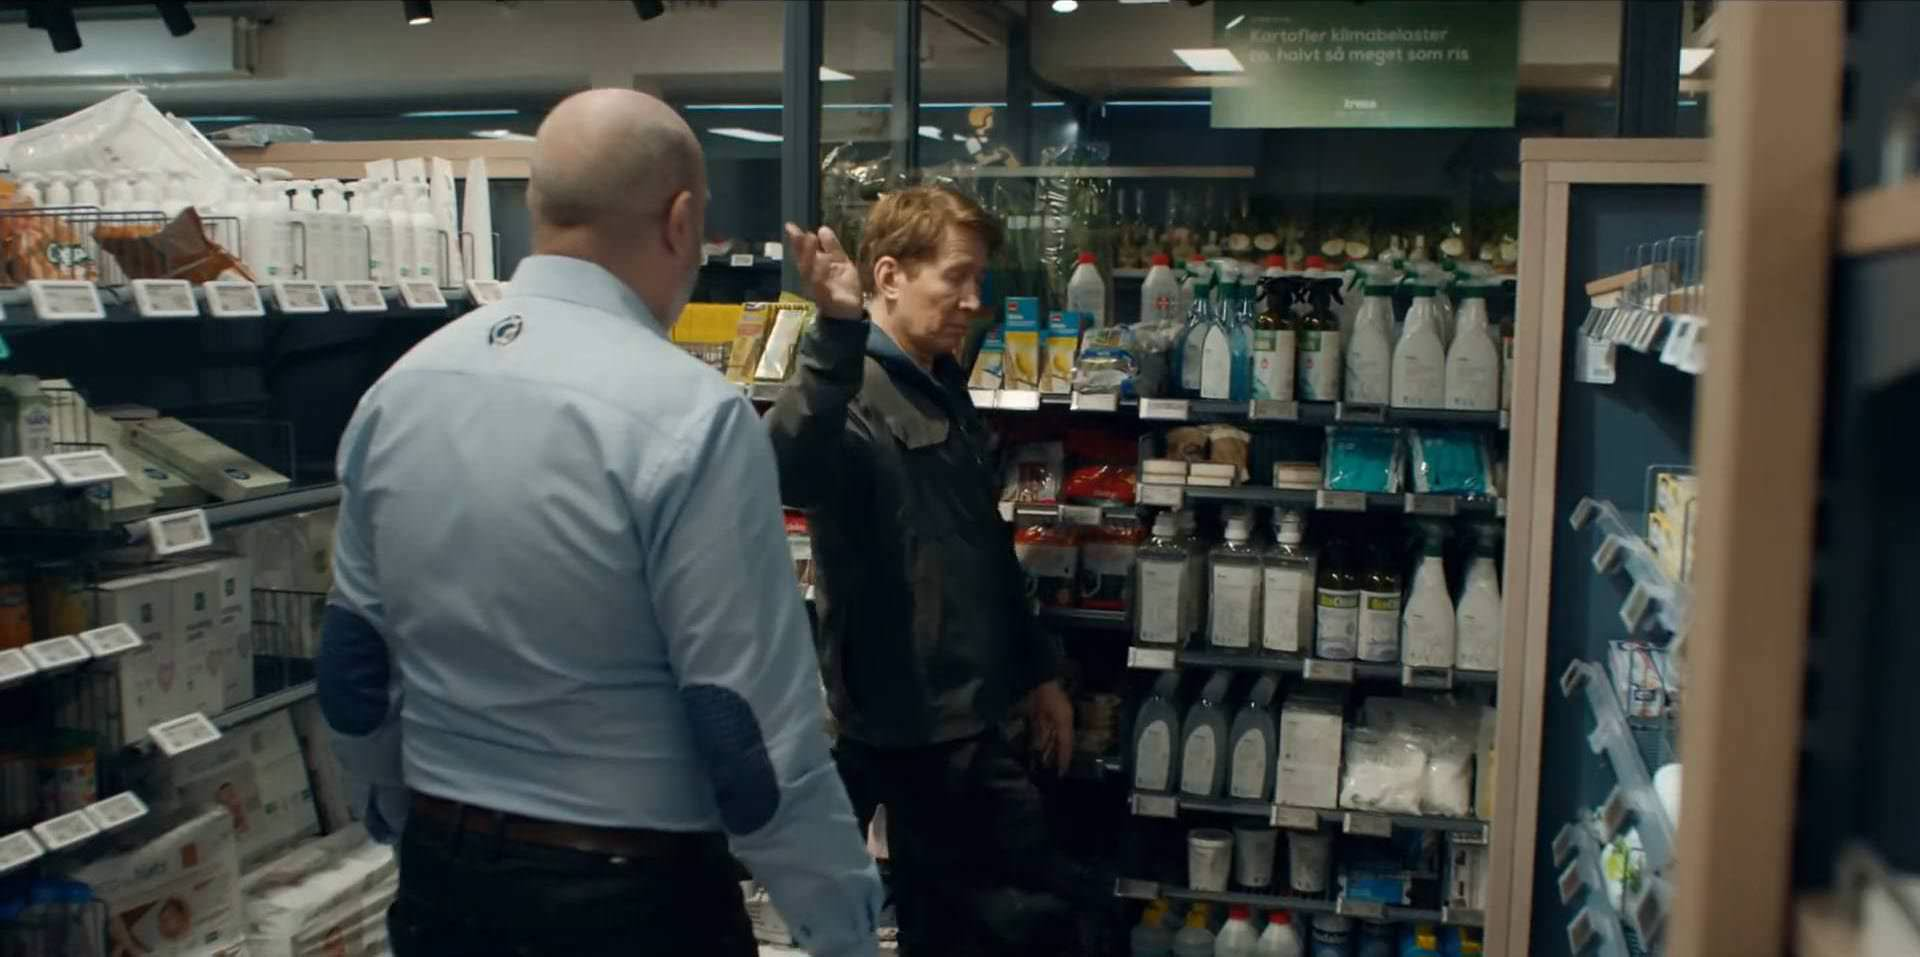 Tommy in the store with an unfavorable mood in the movie another round